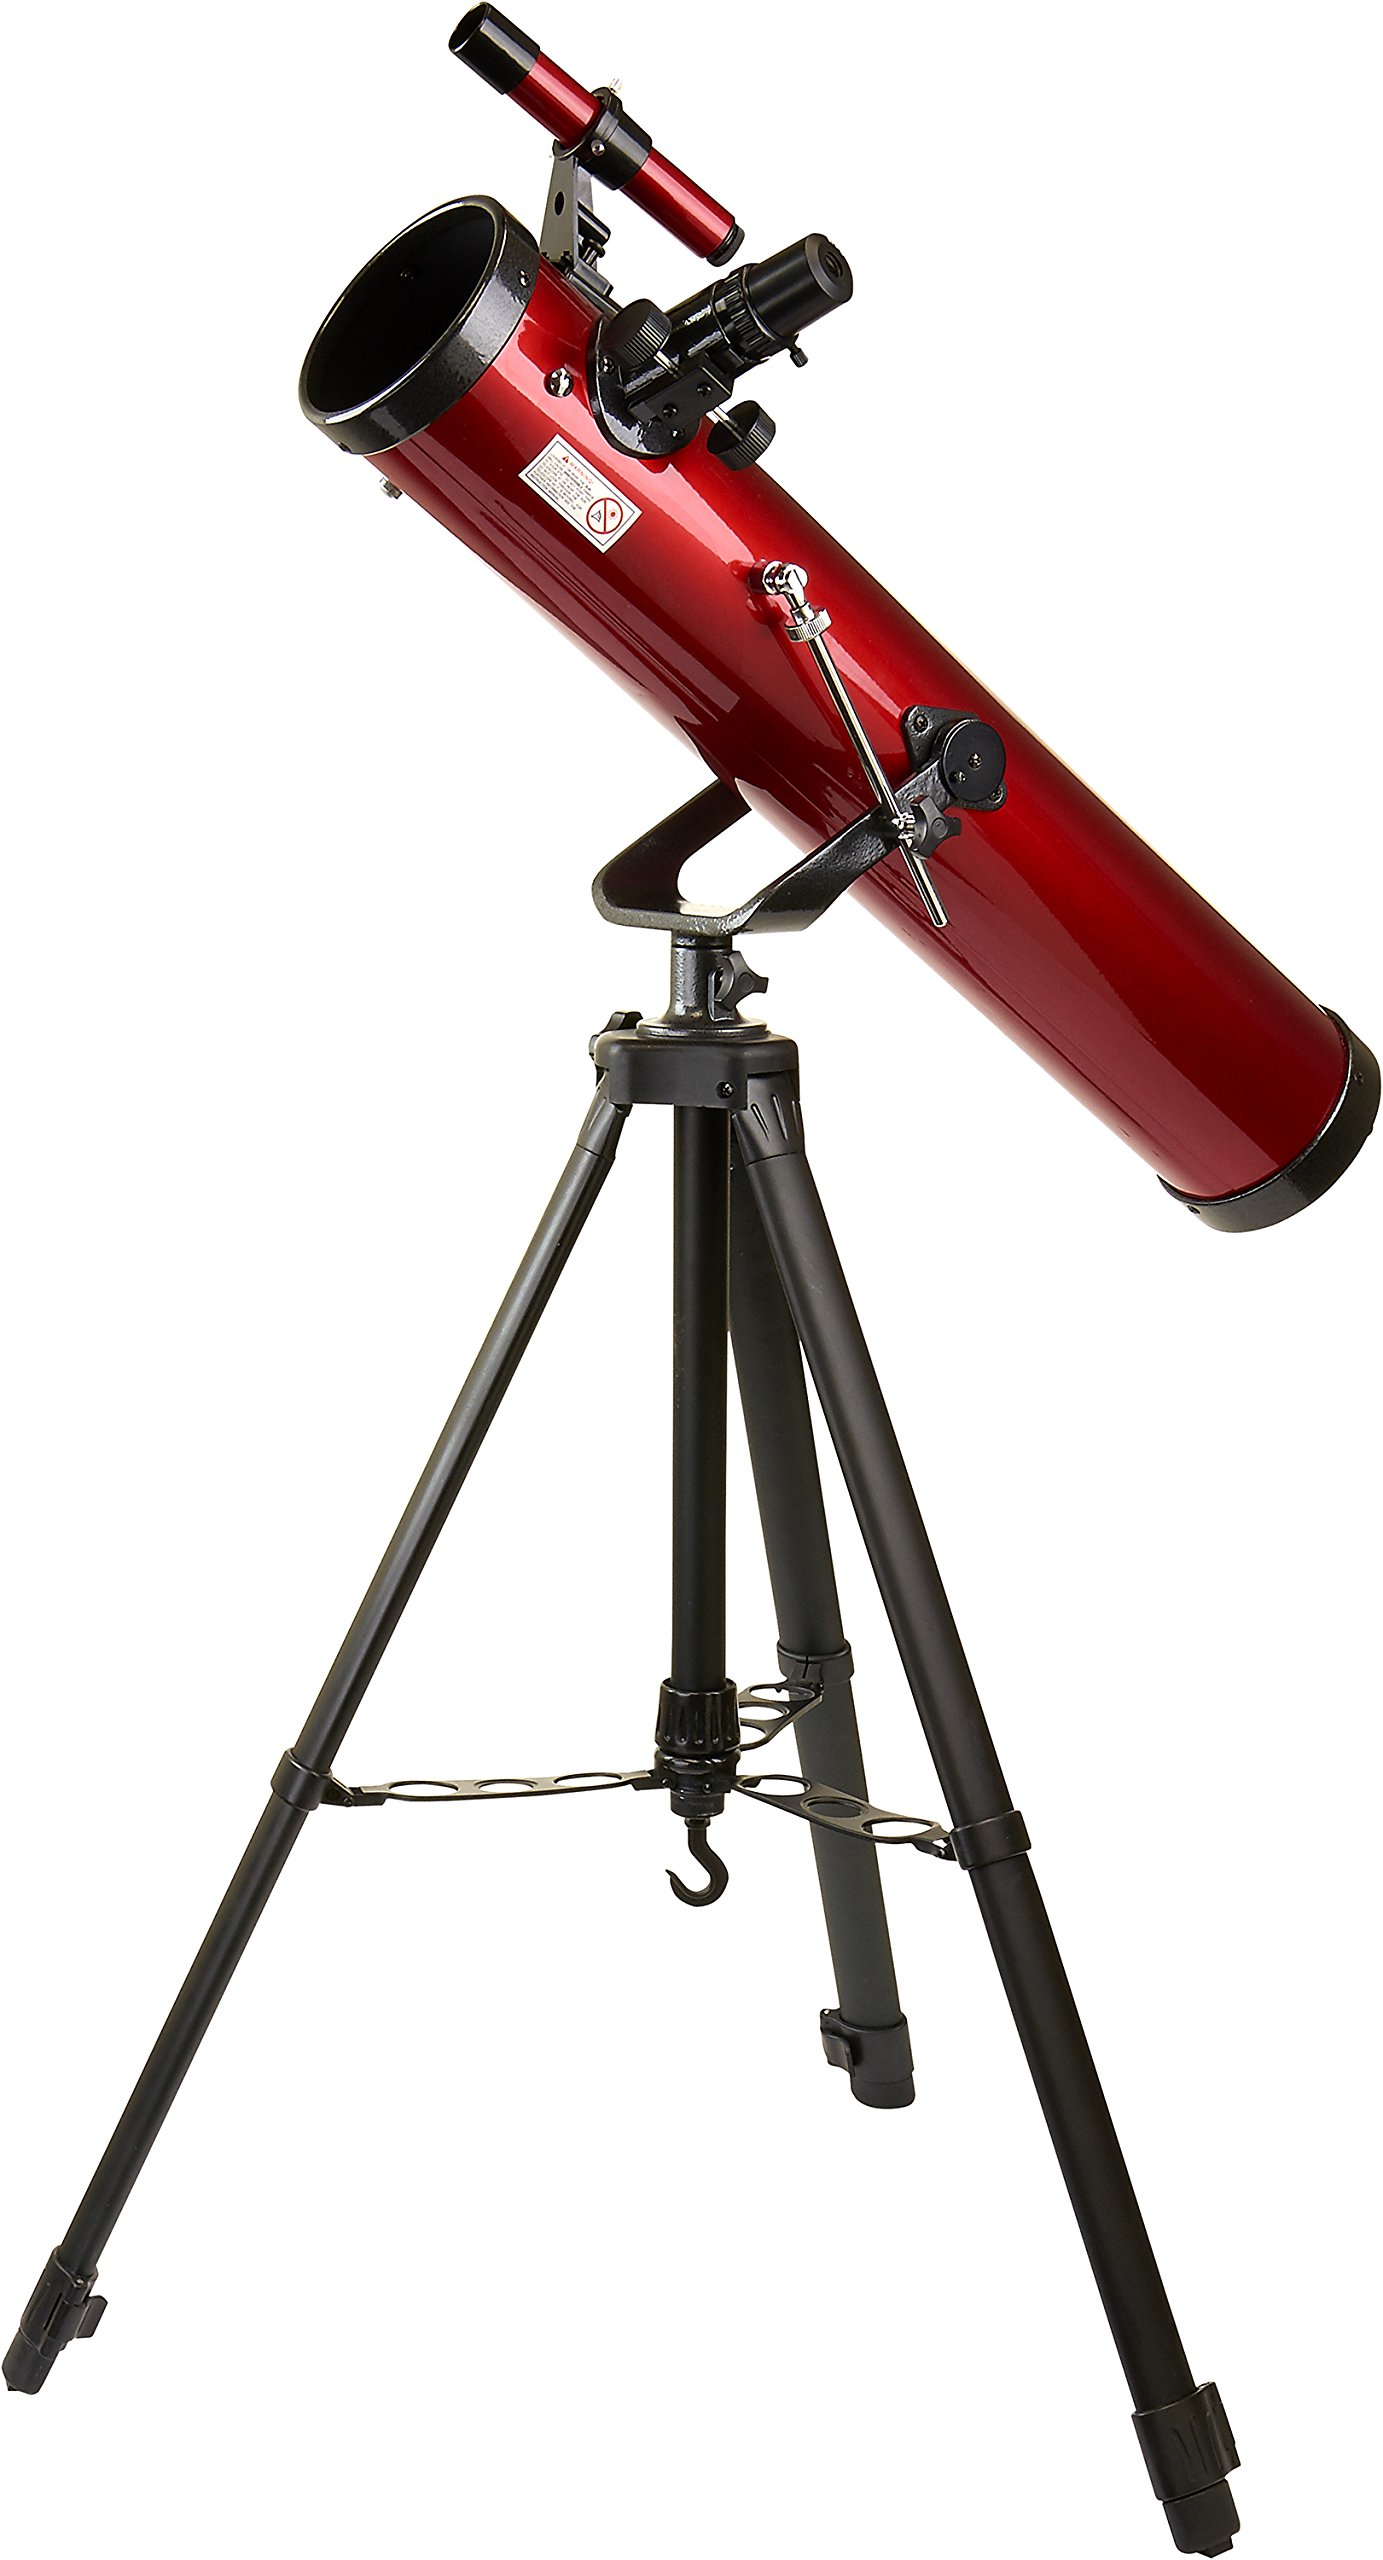 Carson Red Planet 35-78x76mm Newtonian Reflector Telescope (RP-100) by Carson